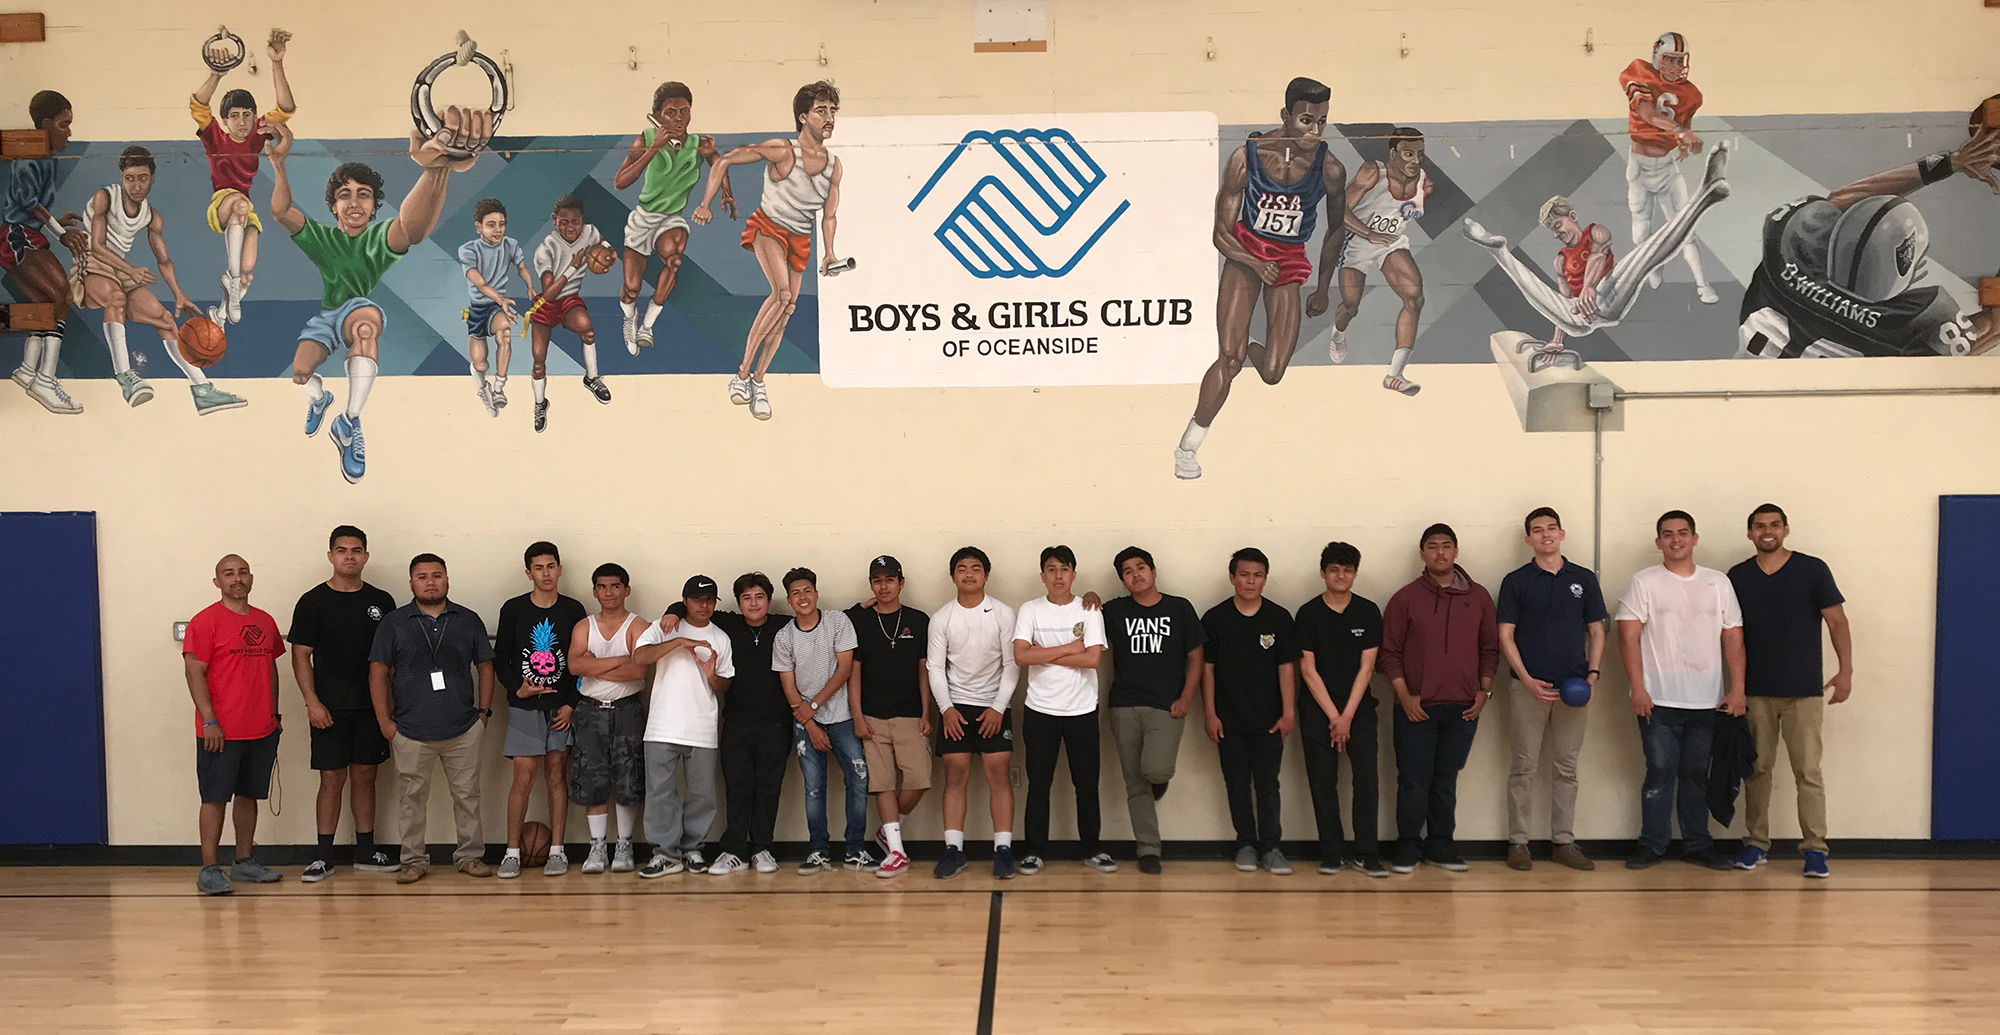 THE LATINO YOUNG MEN SUCCESS MENTORS TOOK THE TEENS FROM OCEANSIDE HIGH SCHOOL AND EL CAMINO HIGH SCHOOL TO THE BOYS & GIRLS CLUB OF OCEANSIDE TO TAKE A BREAK FROM THEIR WEEKLY CLASSROOM ROUTINE AND TO RUN OFF SOME ENERGY. THE AFTERNOON WAS A HIT WITH MORE VISITS PLANNED FOR THE SUMMER.